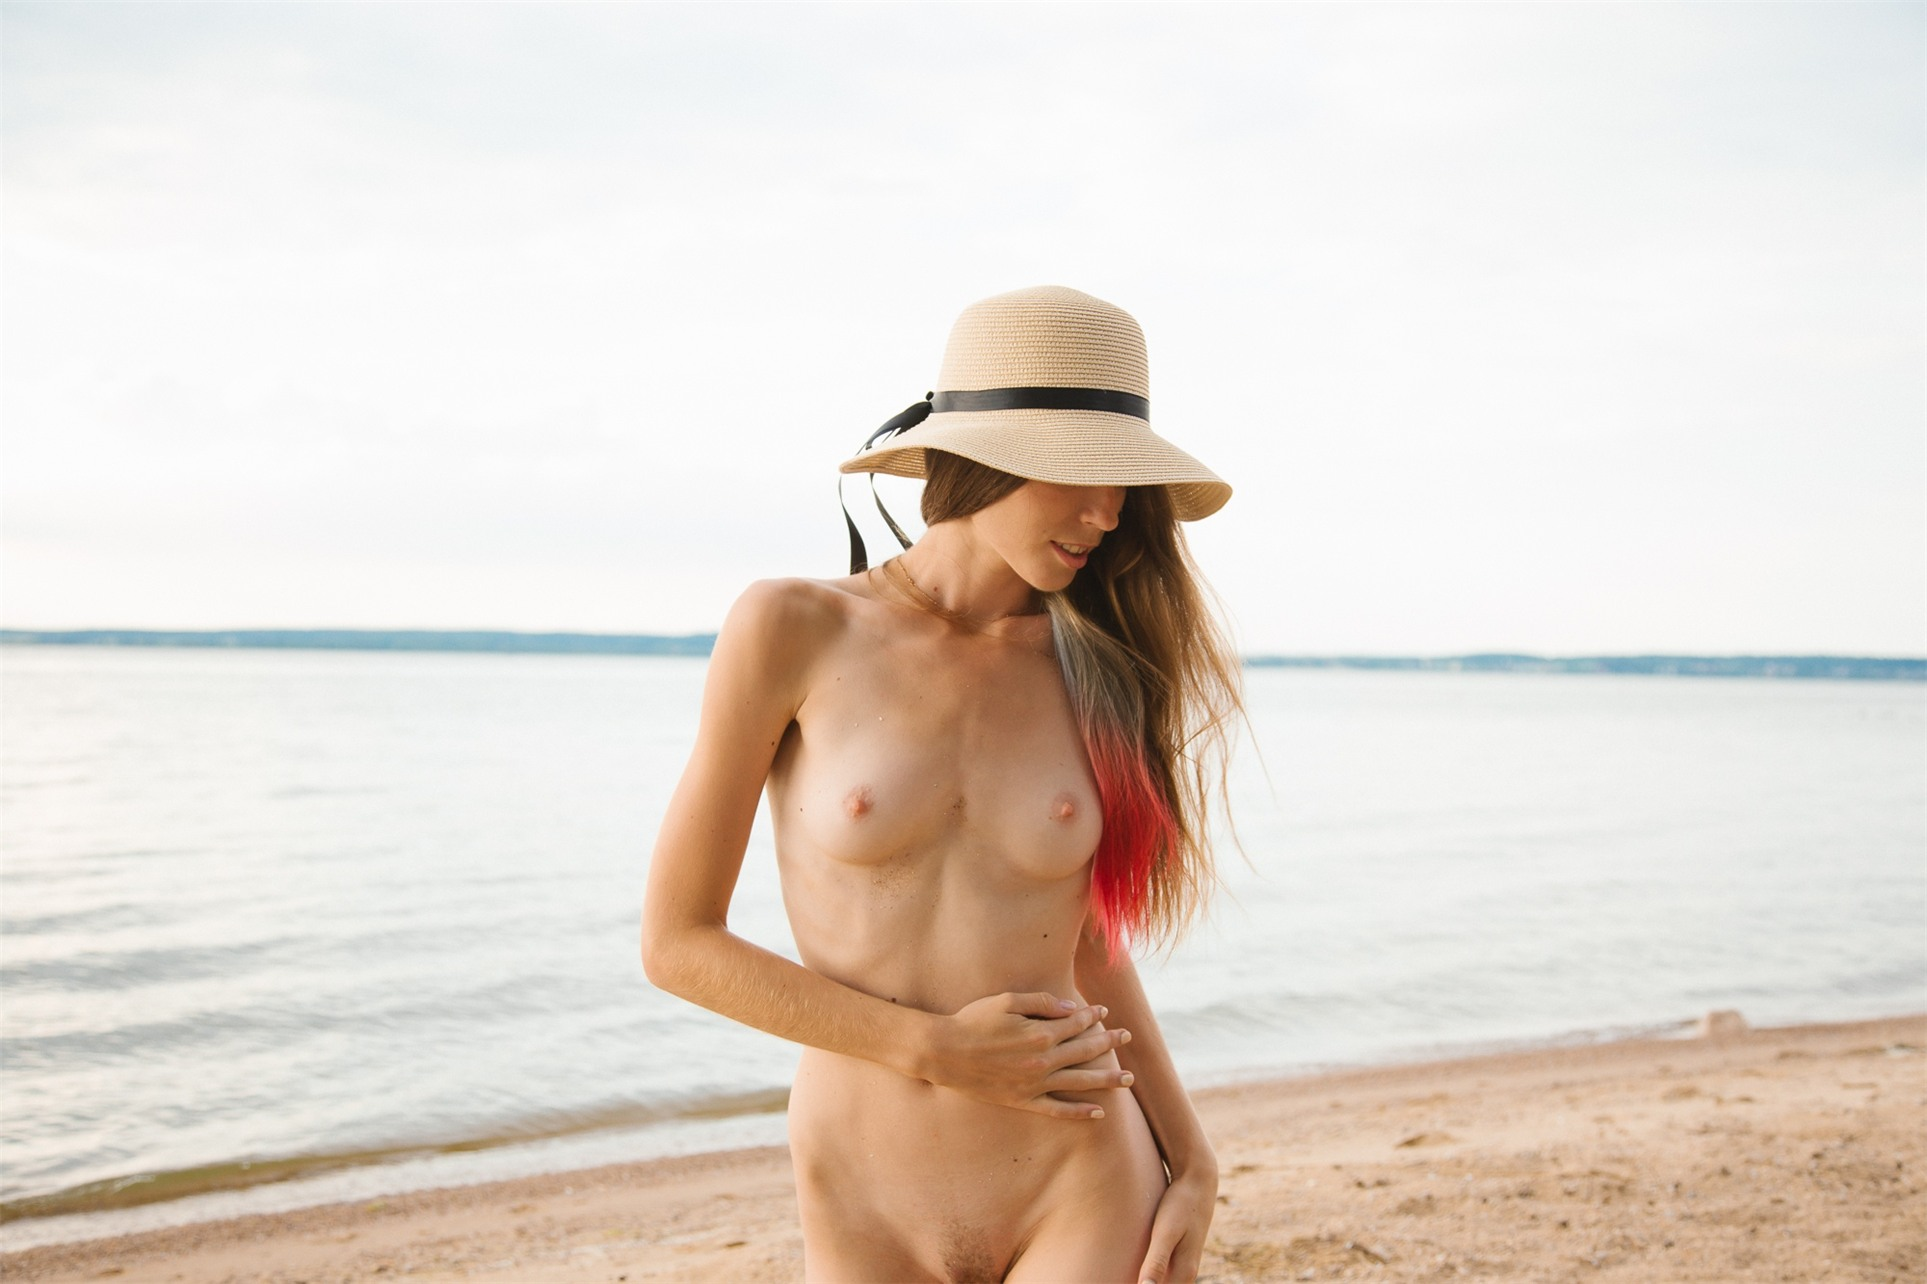 Coral smith nude, topless pictures, playboy photos, sex scene uncensored